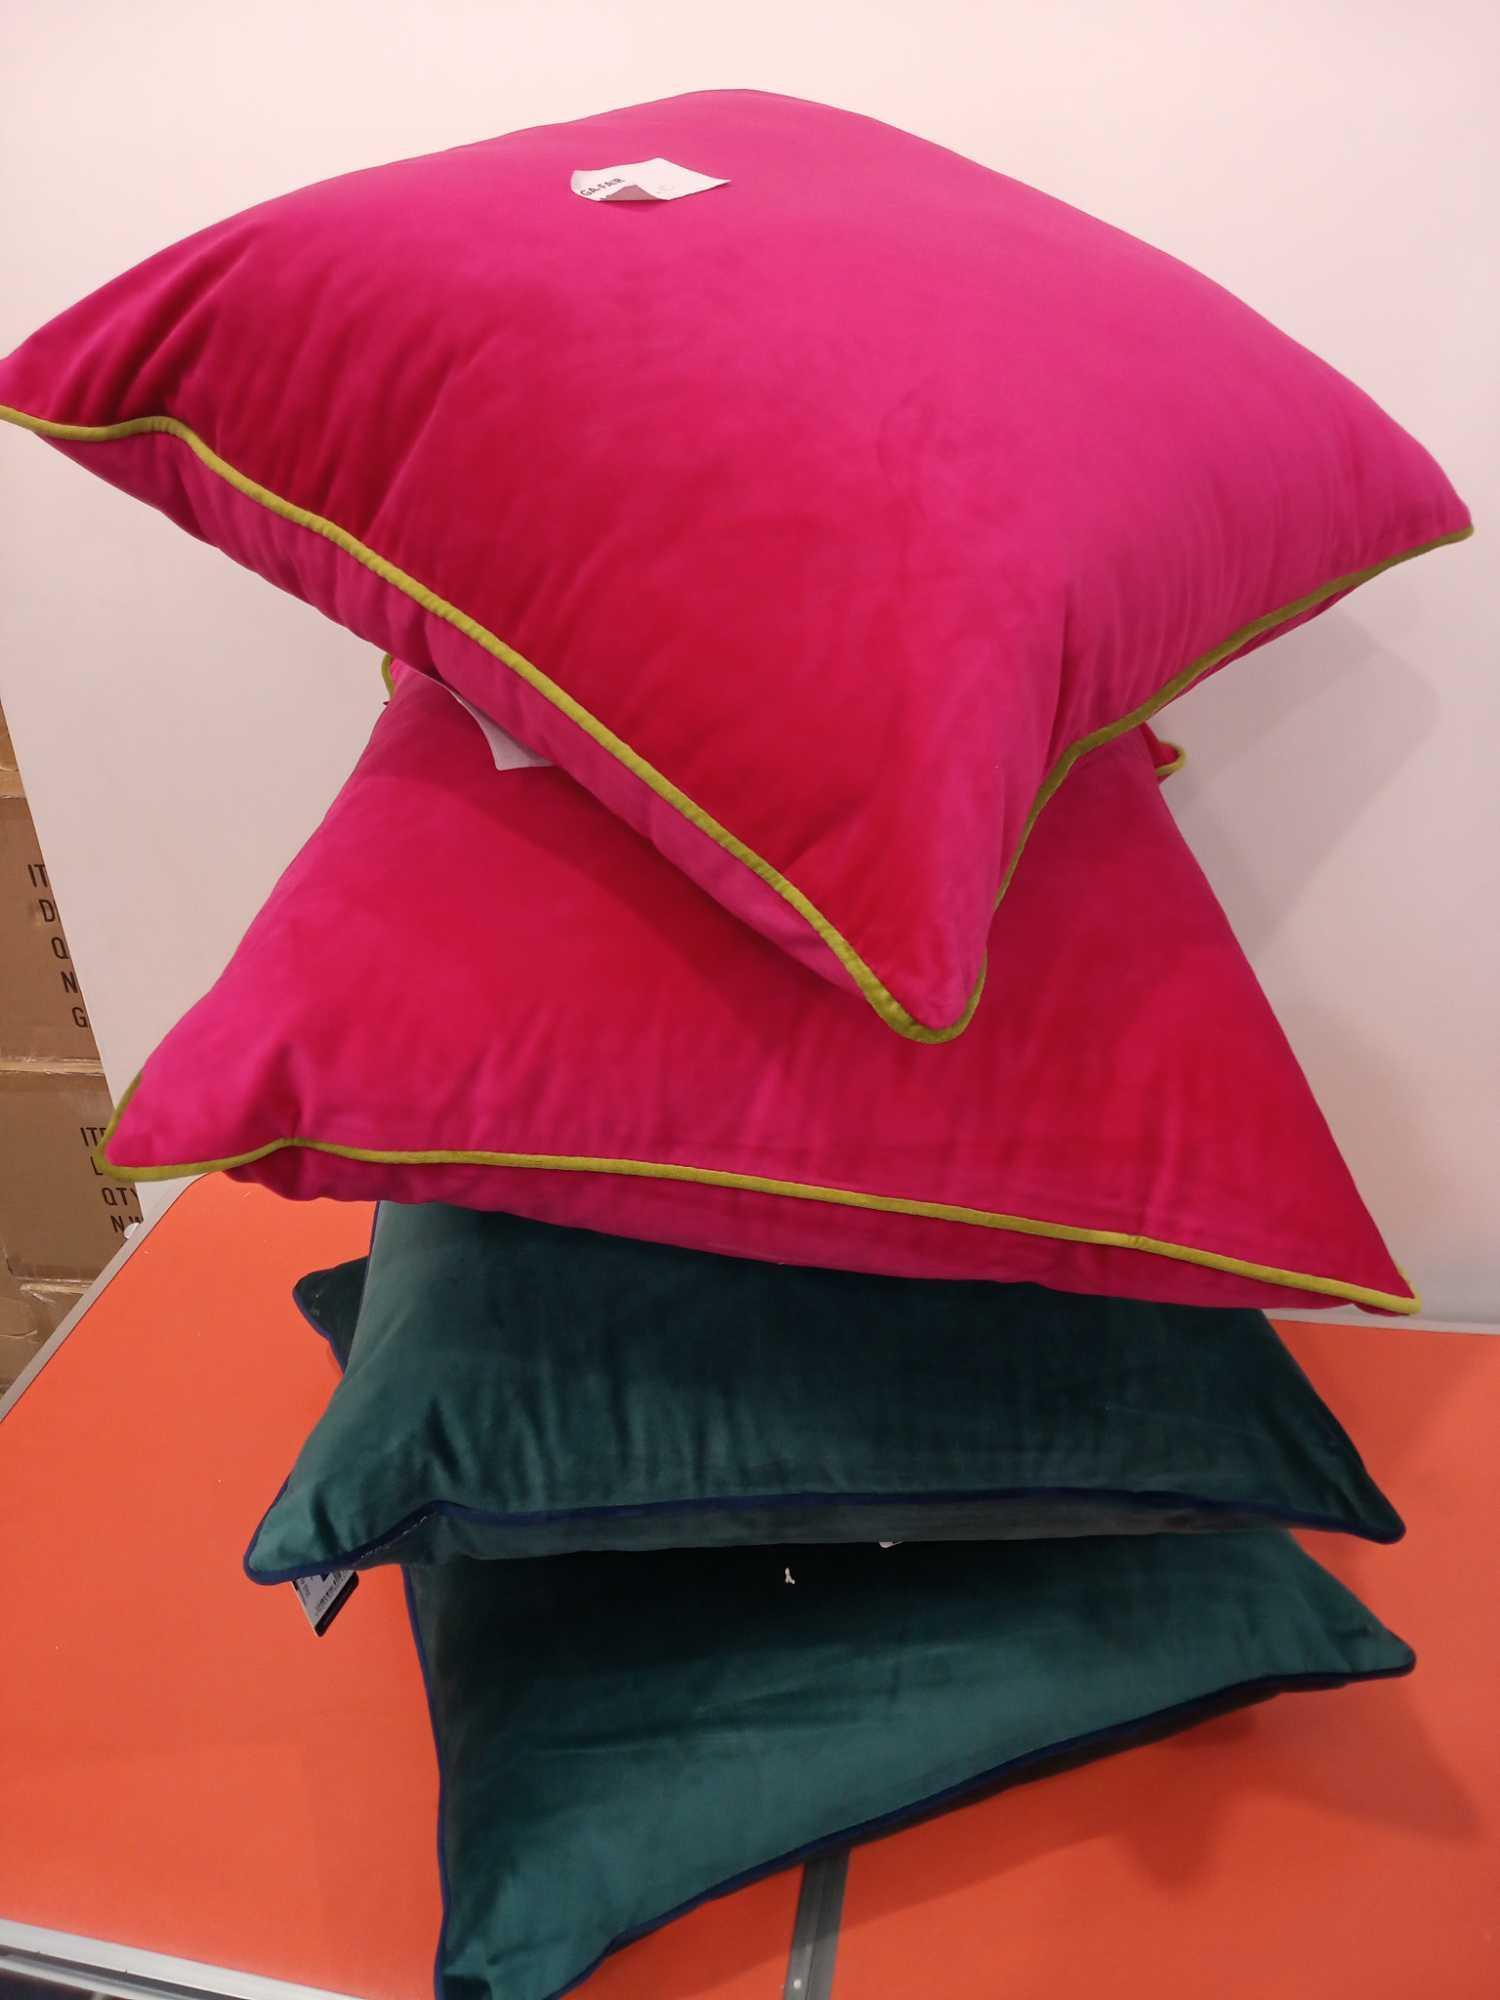 Rrp £30 Each Assorted Paoletti Velvet Cushions 2 In Dark Green With Blue Piping And 2 In Pink With G - Image 2 of 2